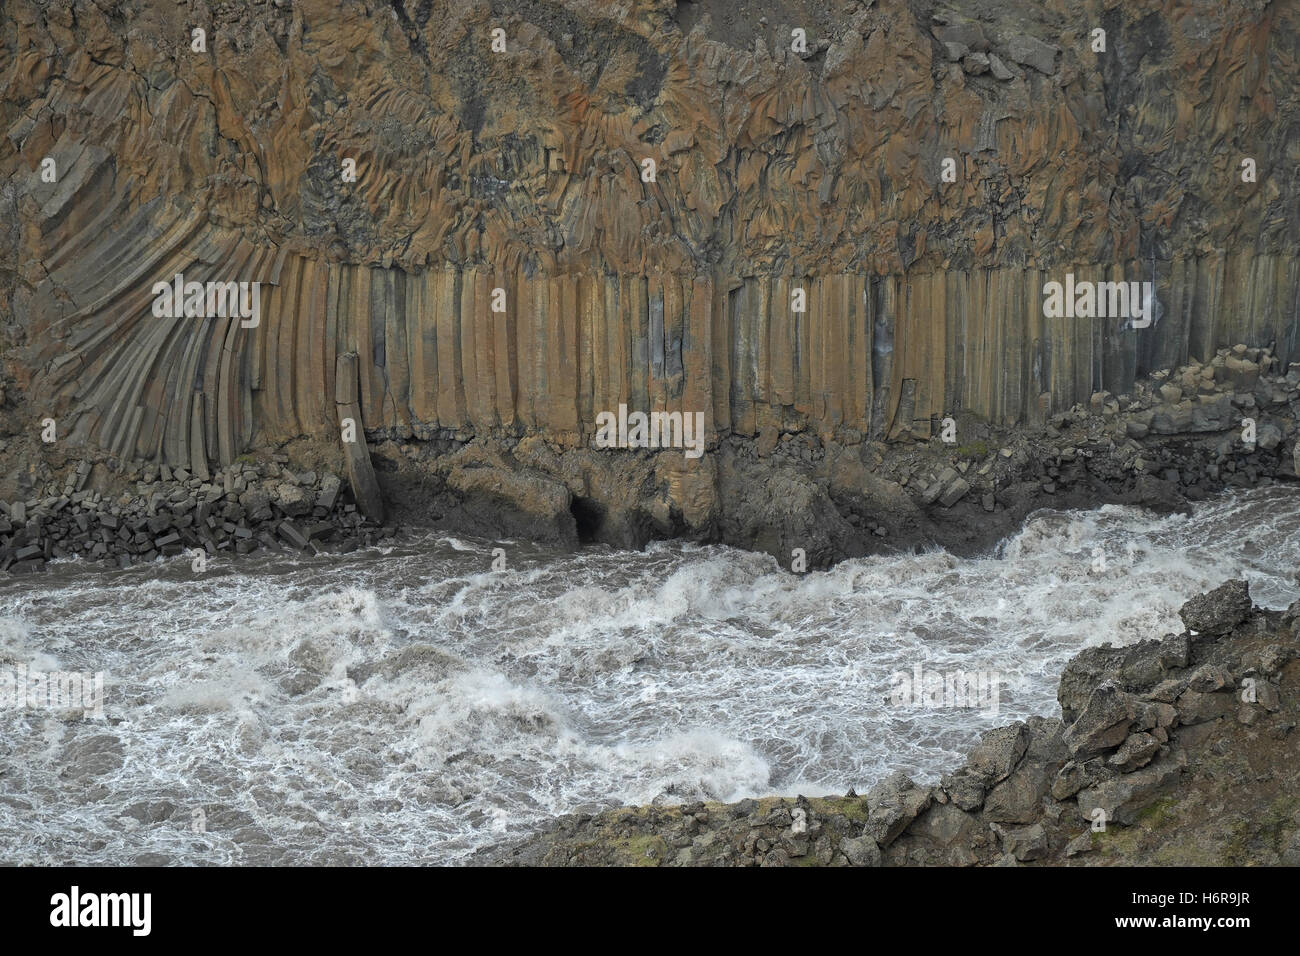 Classic columnar jointing in basalt with almost leaf-like entablature above it, Aldeyjarfoss, central Iceland. - Stock Image